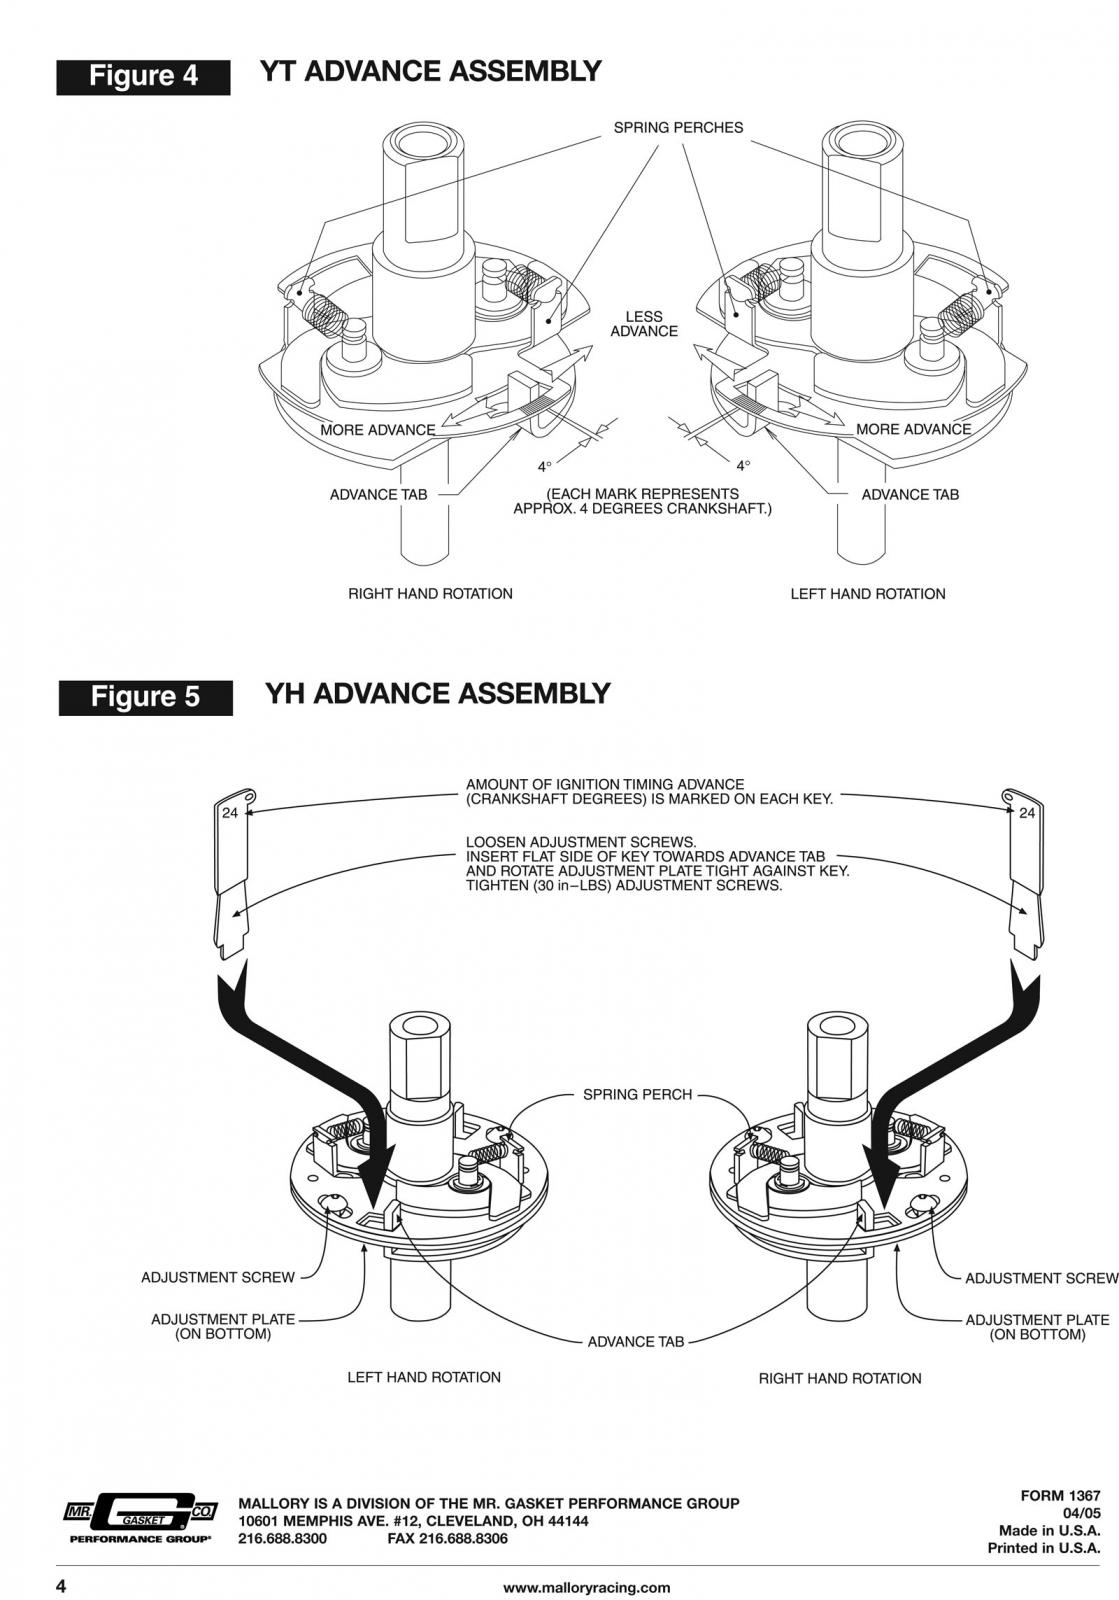 TheSamba.com :: Performance / Engines / Transmissions - View topic ...